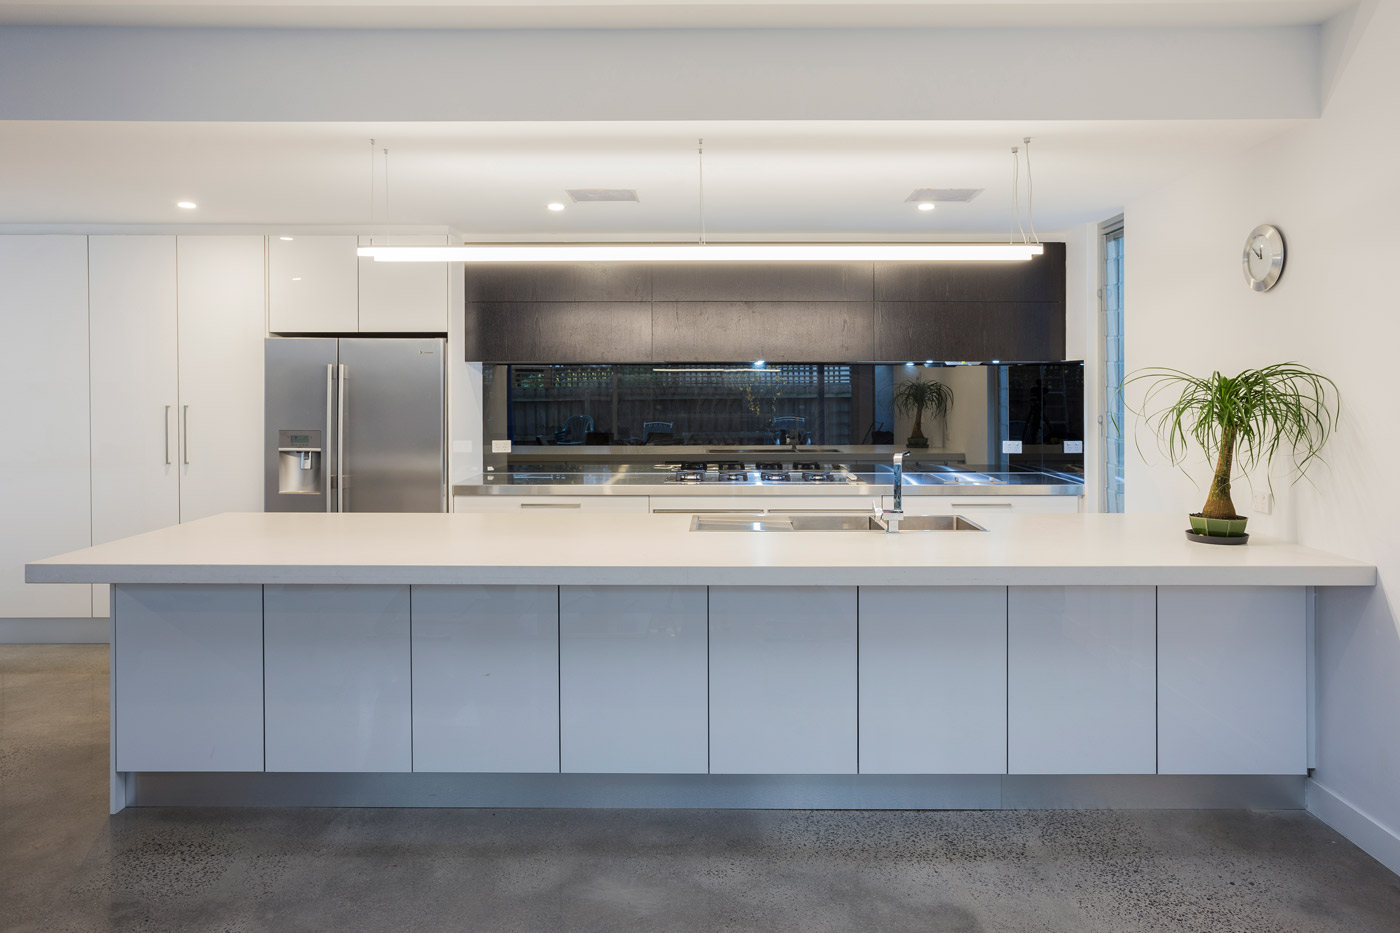 Stunning Artic ice acrylic full gloss kitchen with feature timber veneer full lift cabinets with two silent rangehoods.